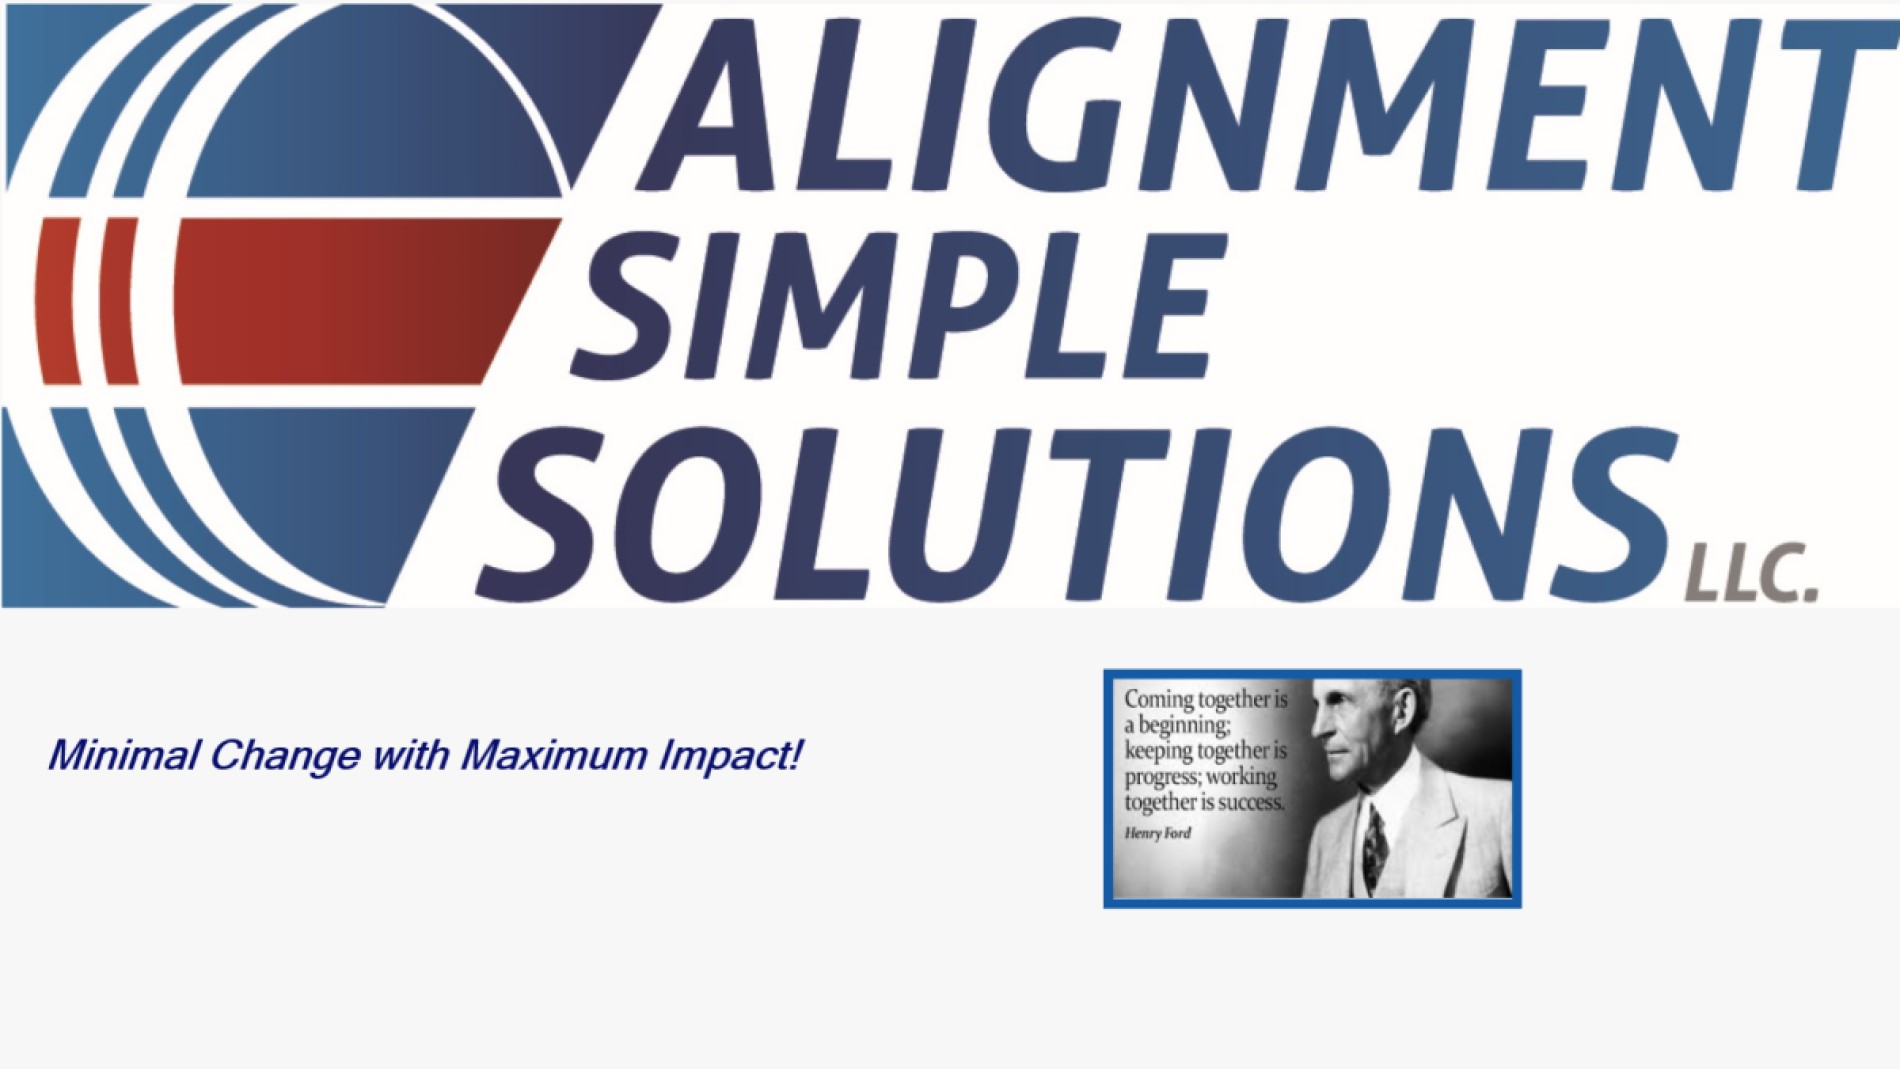 Alignment Simple Solutions Expands GSA Product Pricing to NGO and All Fleet Operators